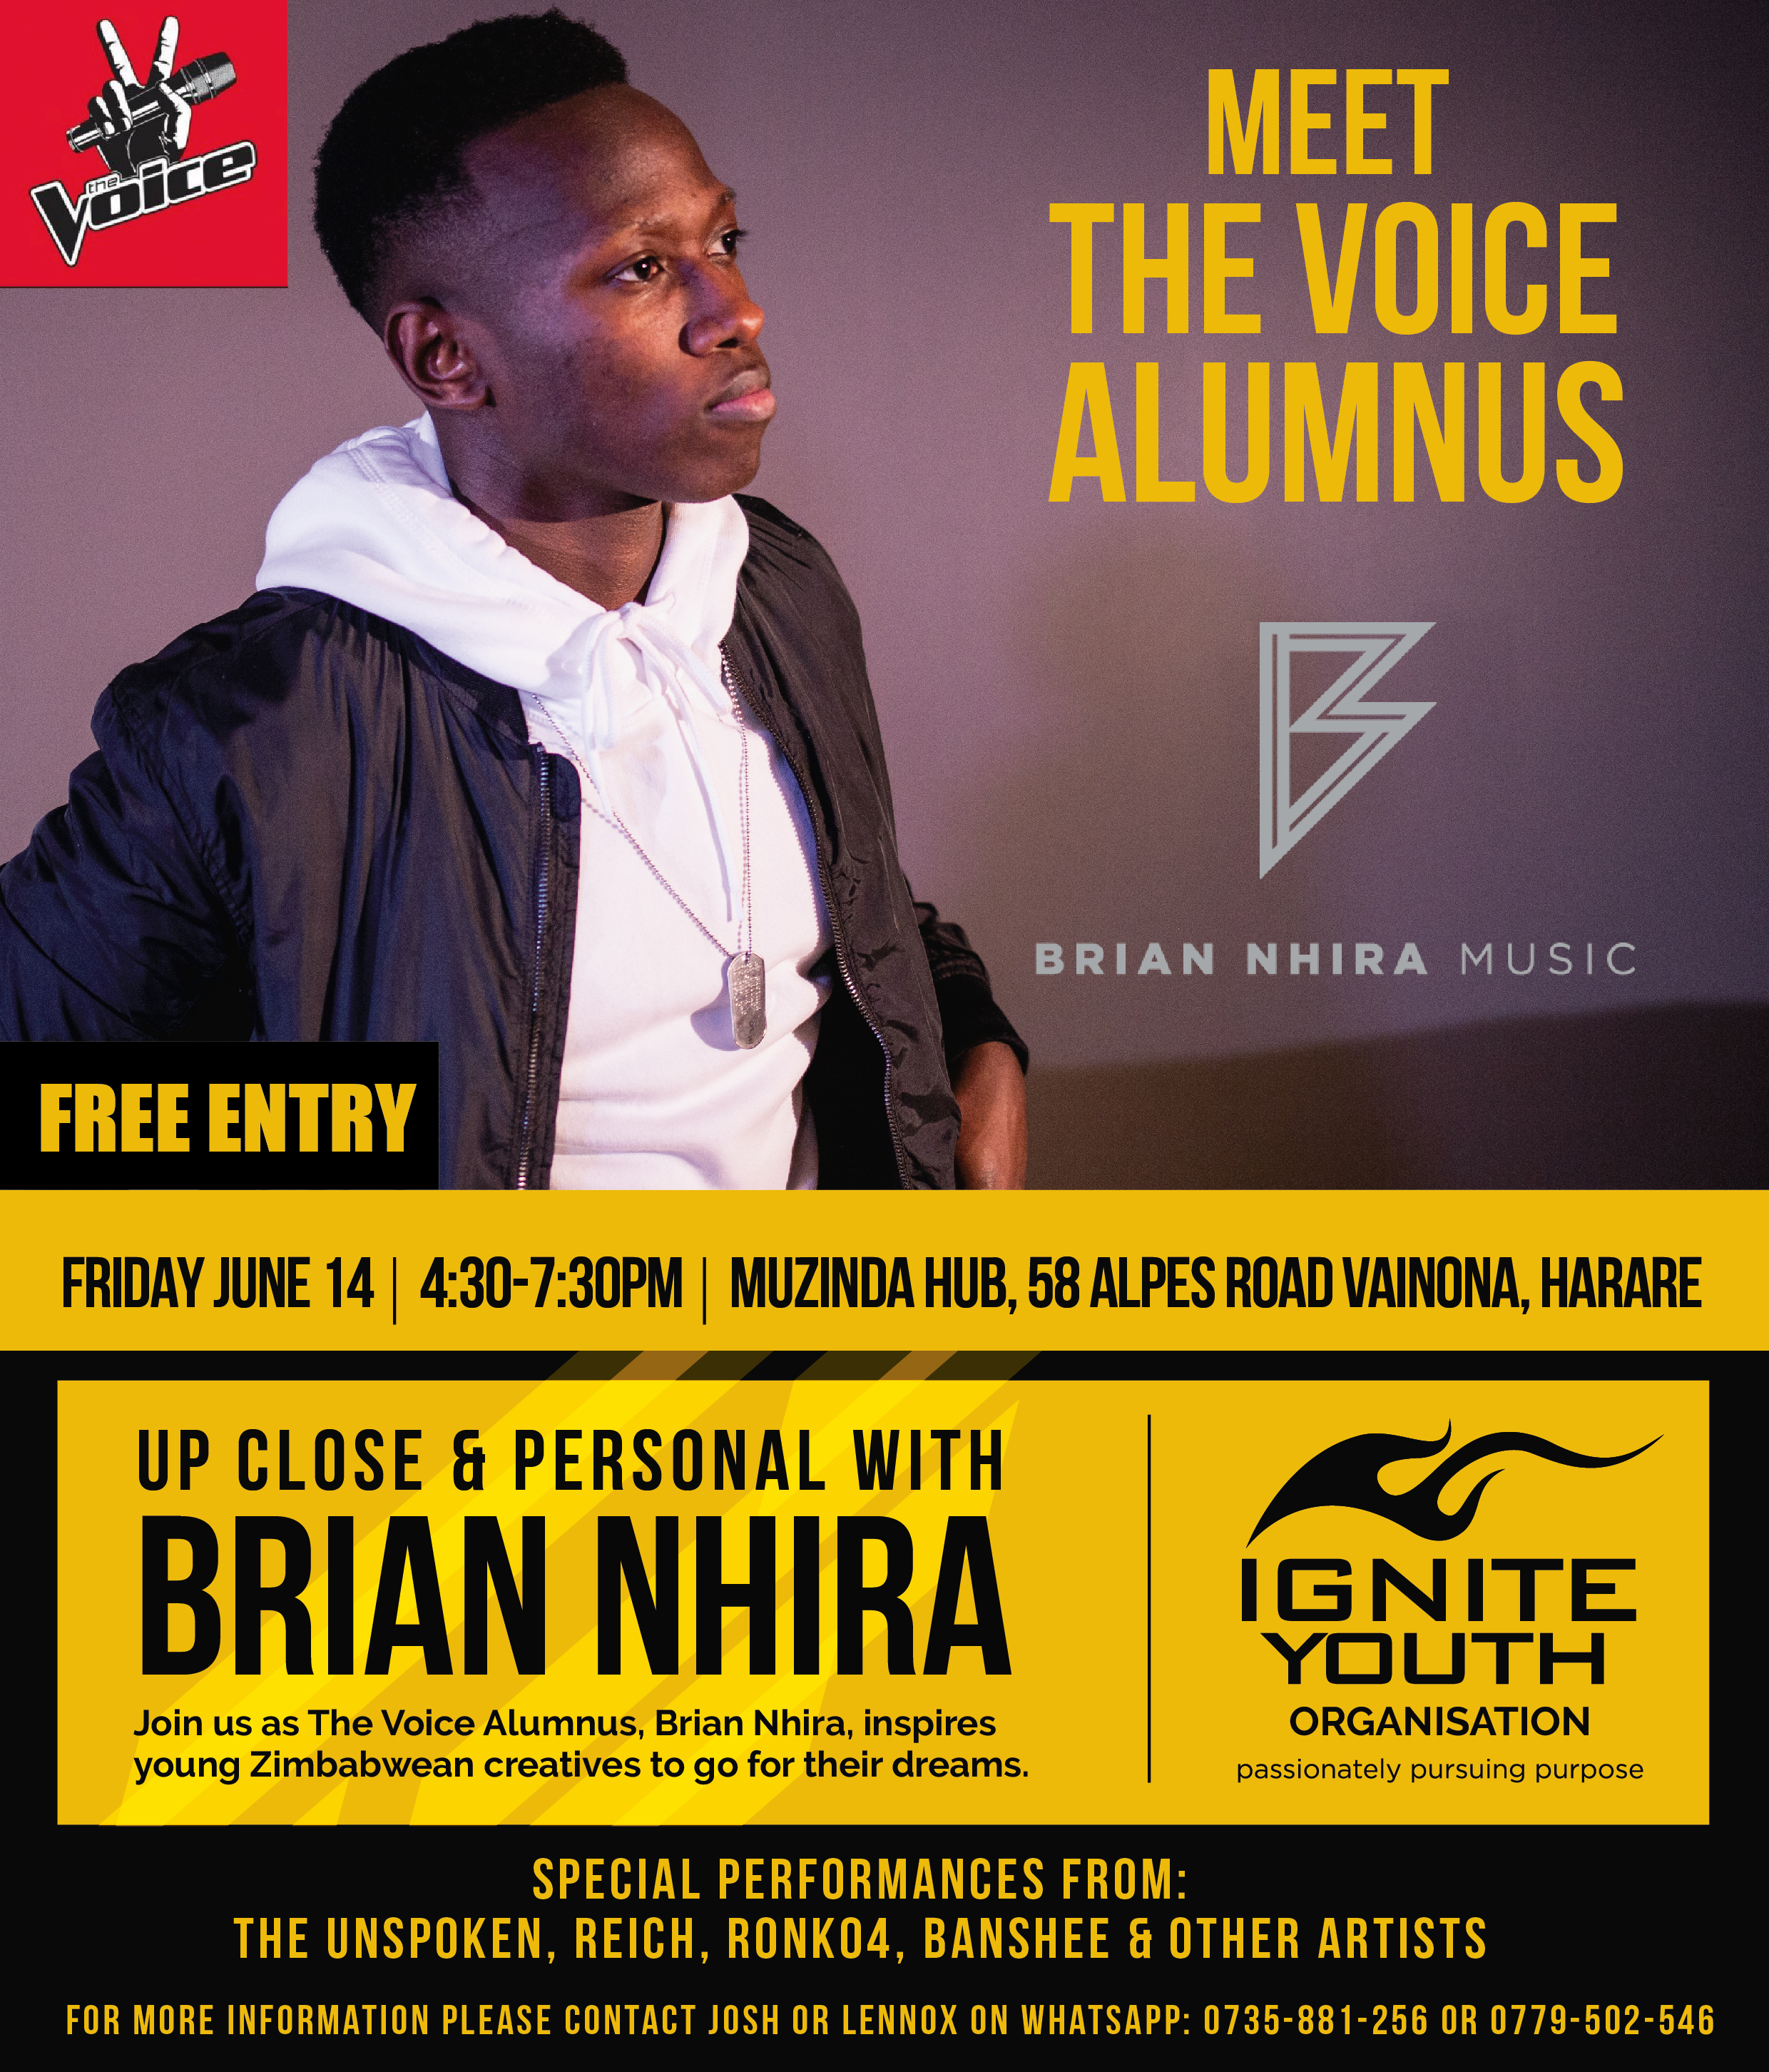 Ignite Youth Organization-Meet an Artist - Brian Nhira-01.jpg